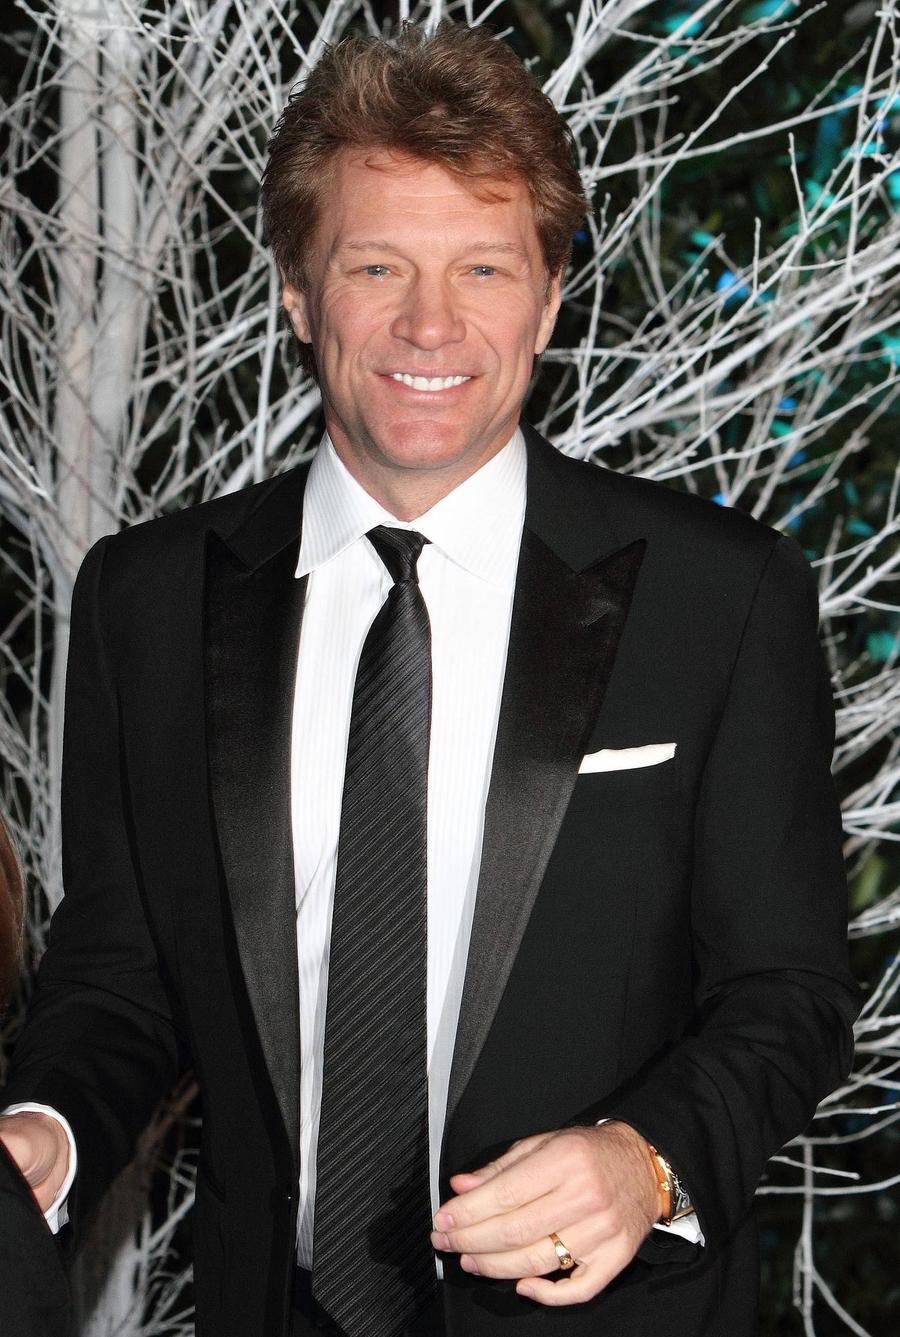 Jon Bon Jovi To Be Feted For Philanthropy